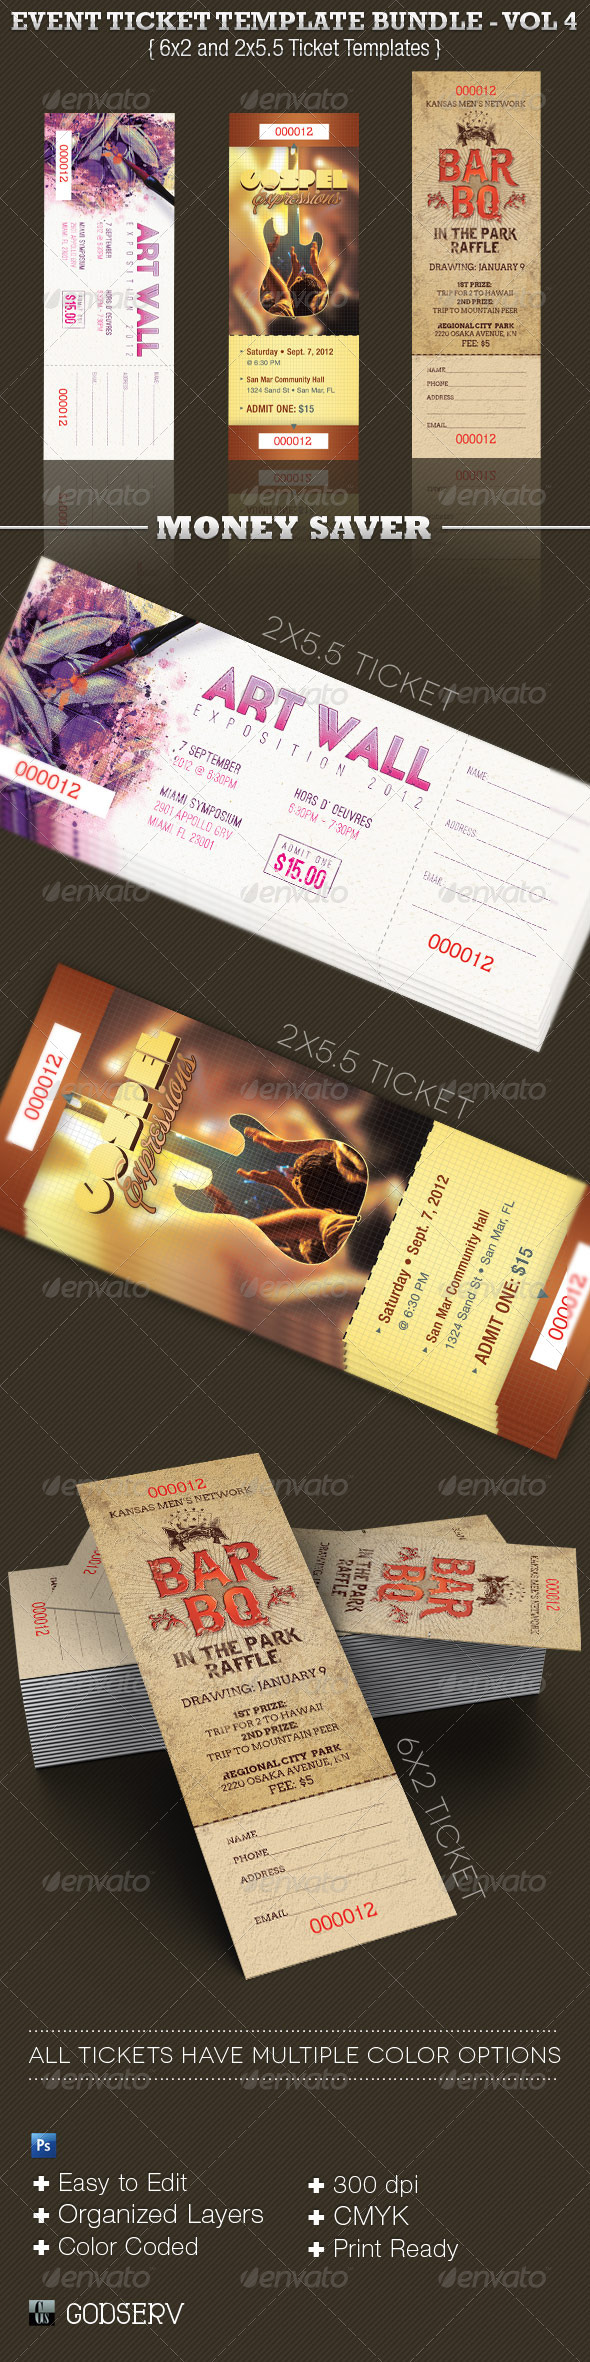 Event Ticket Template Bundle Volume 4 - Miscellaneous Print Templates